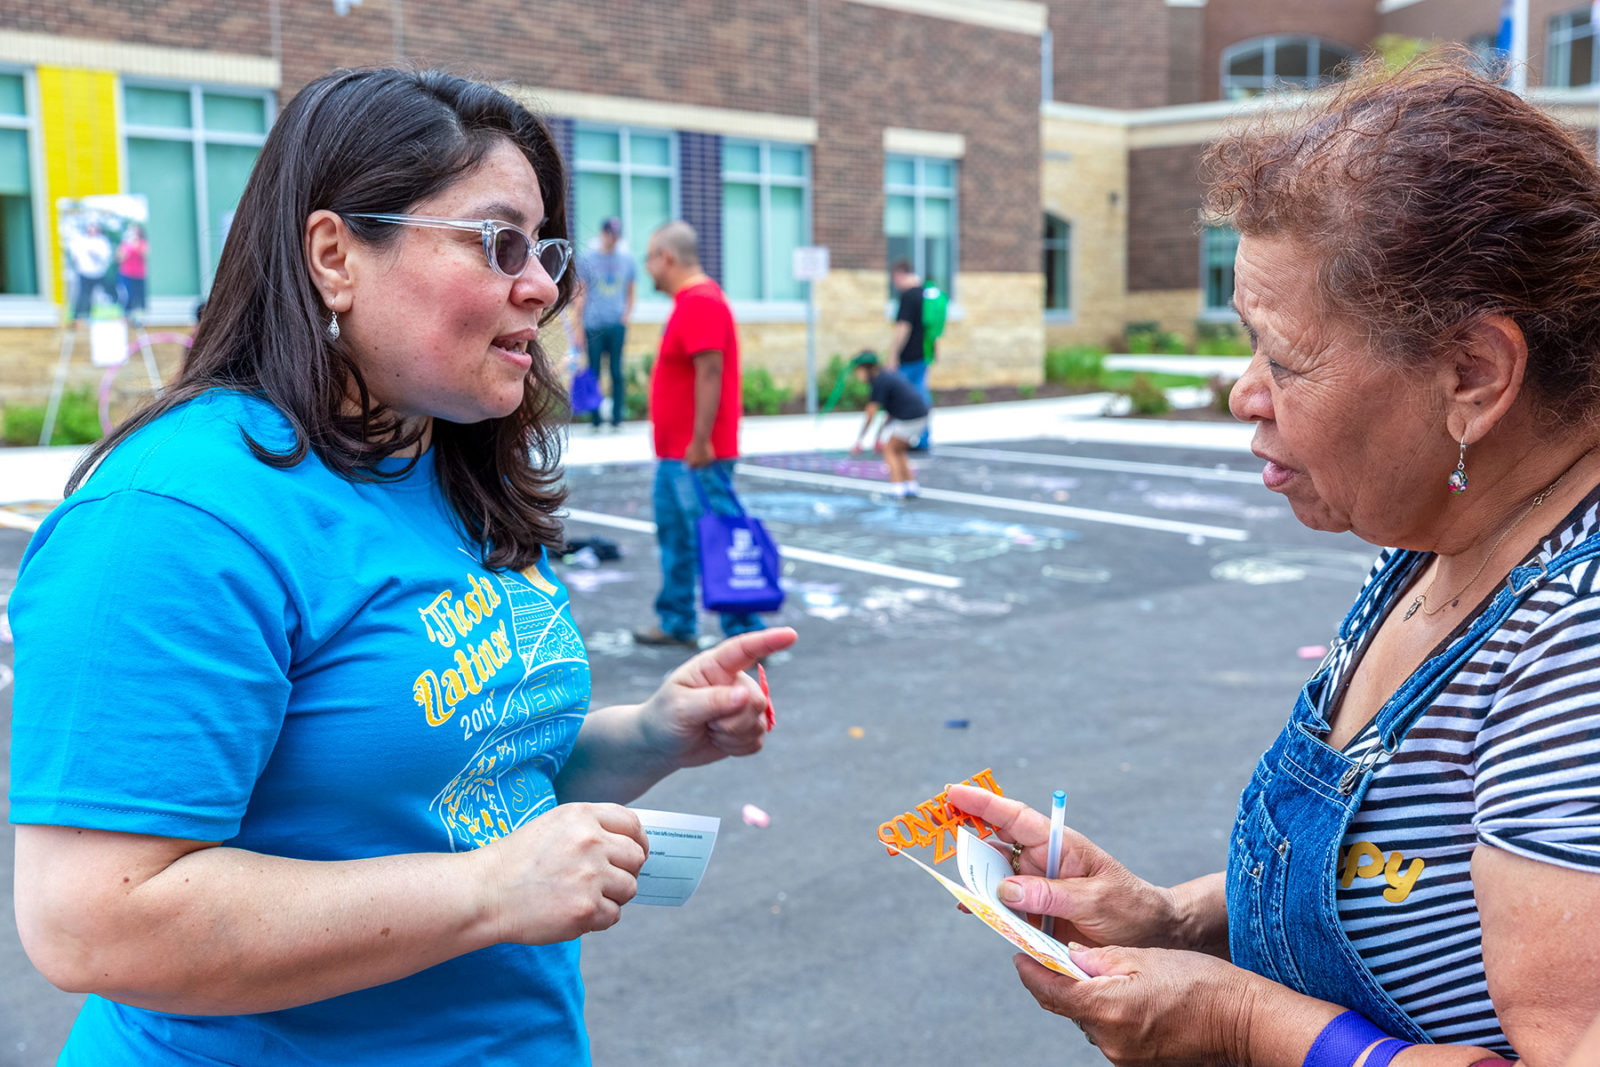 Marylu Ramirez (L) chats with a community member at the Fiesta Latina at Comunidades Latinas Unidas en Servicio (CLUES) in St. Paul's East Side on Aug. 10, 2019. Photo courtesy Kerem Yucel for MPR News